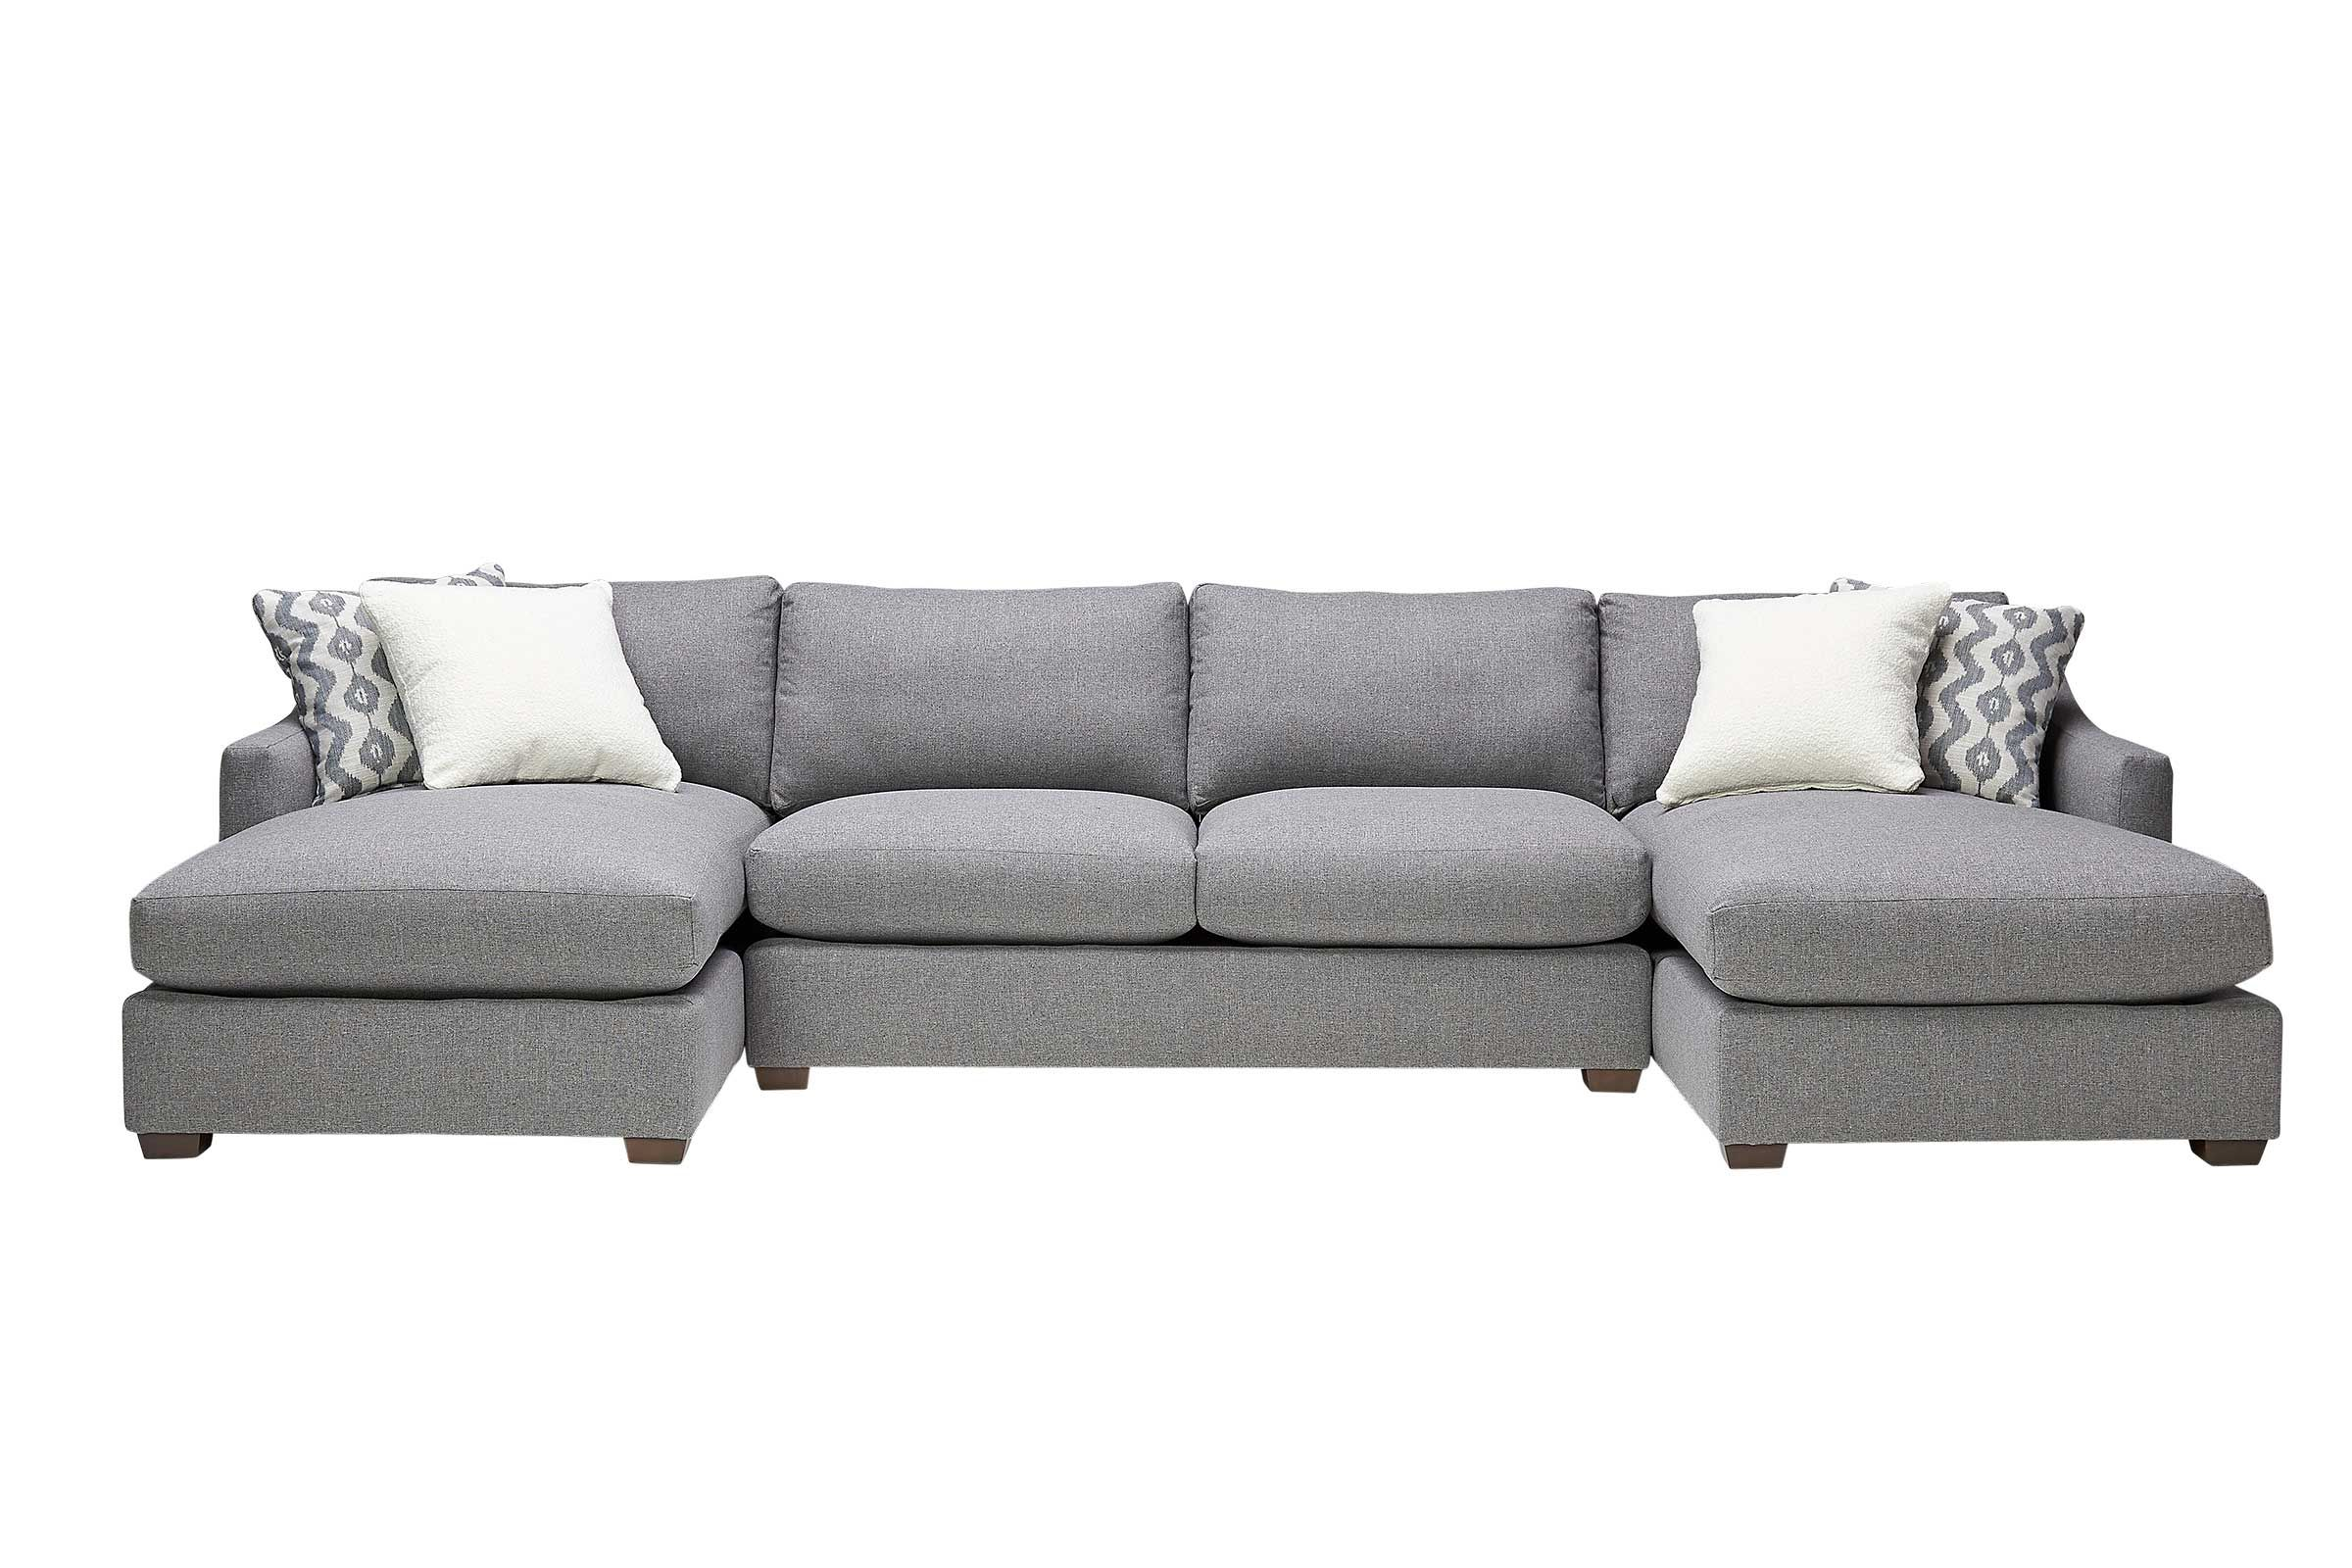 bradford 3 piece dual chaise sectional by robin bruce